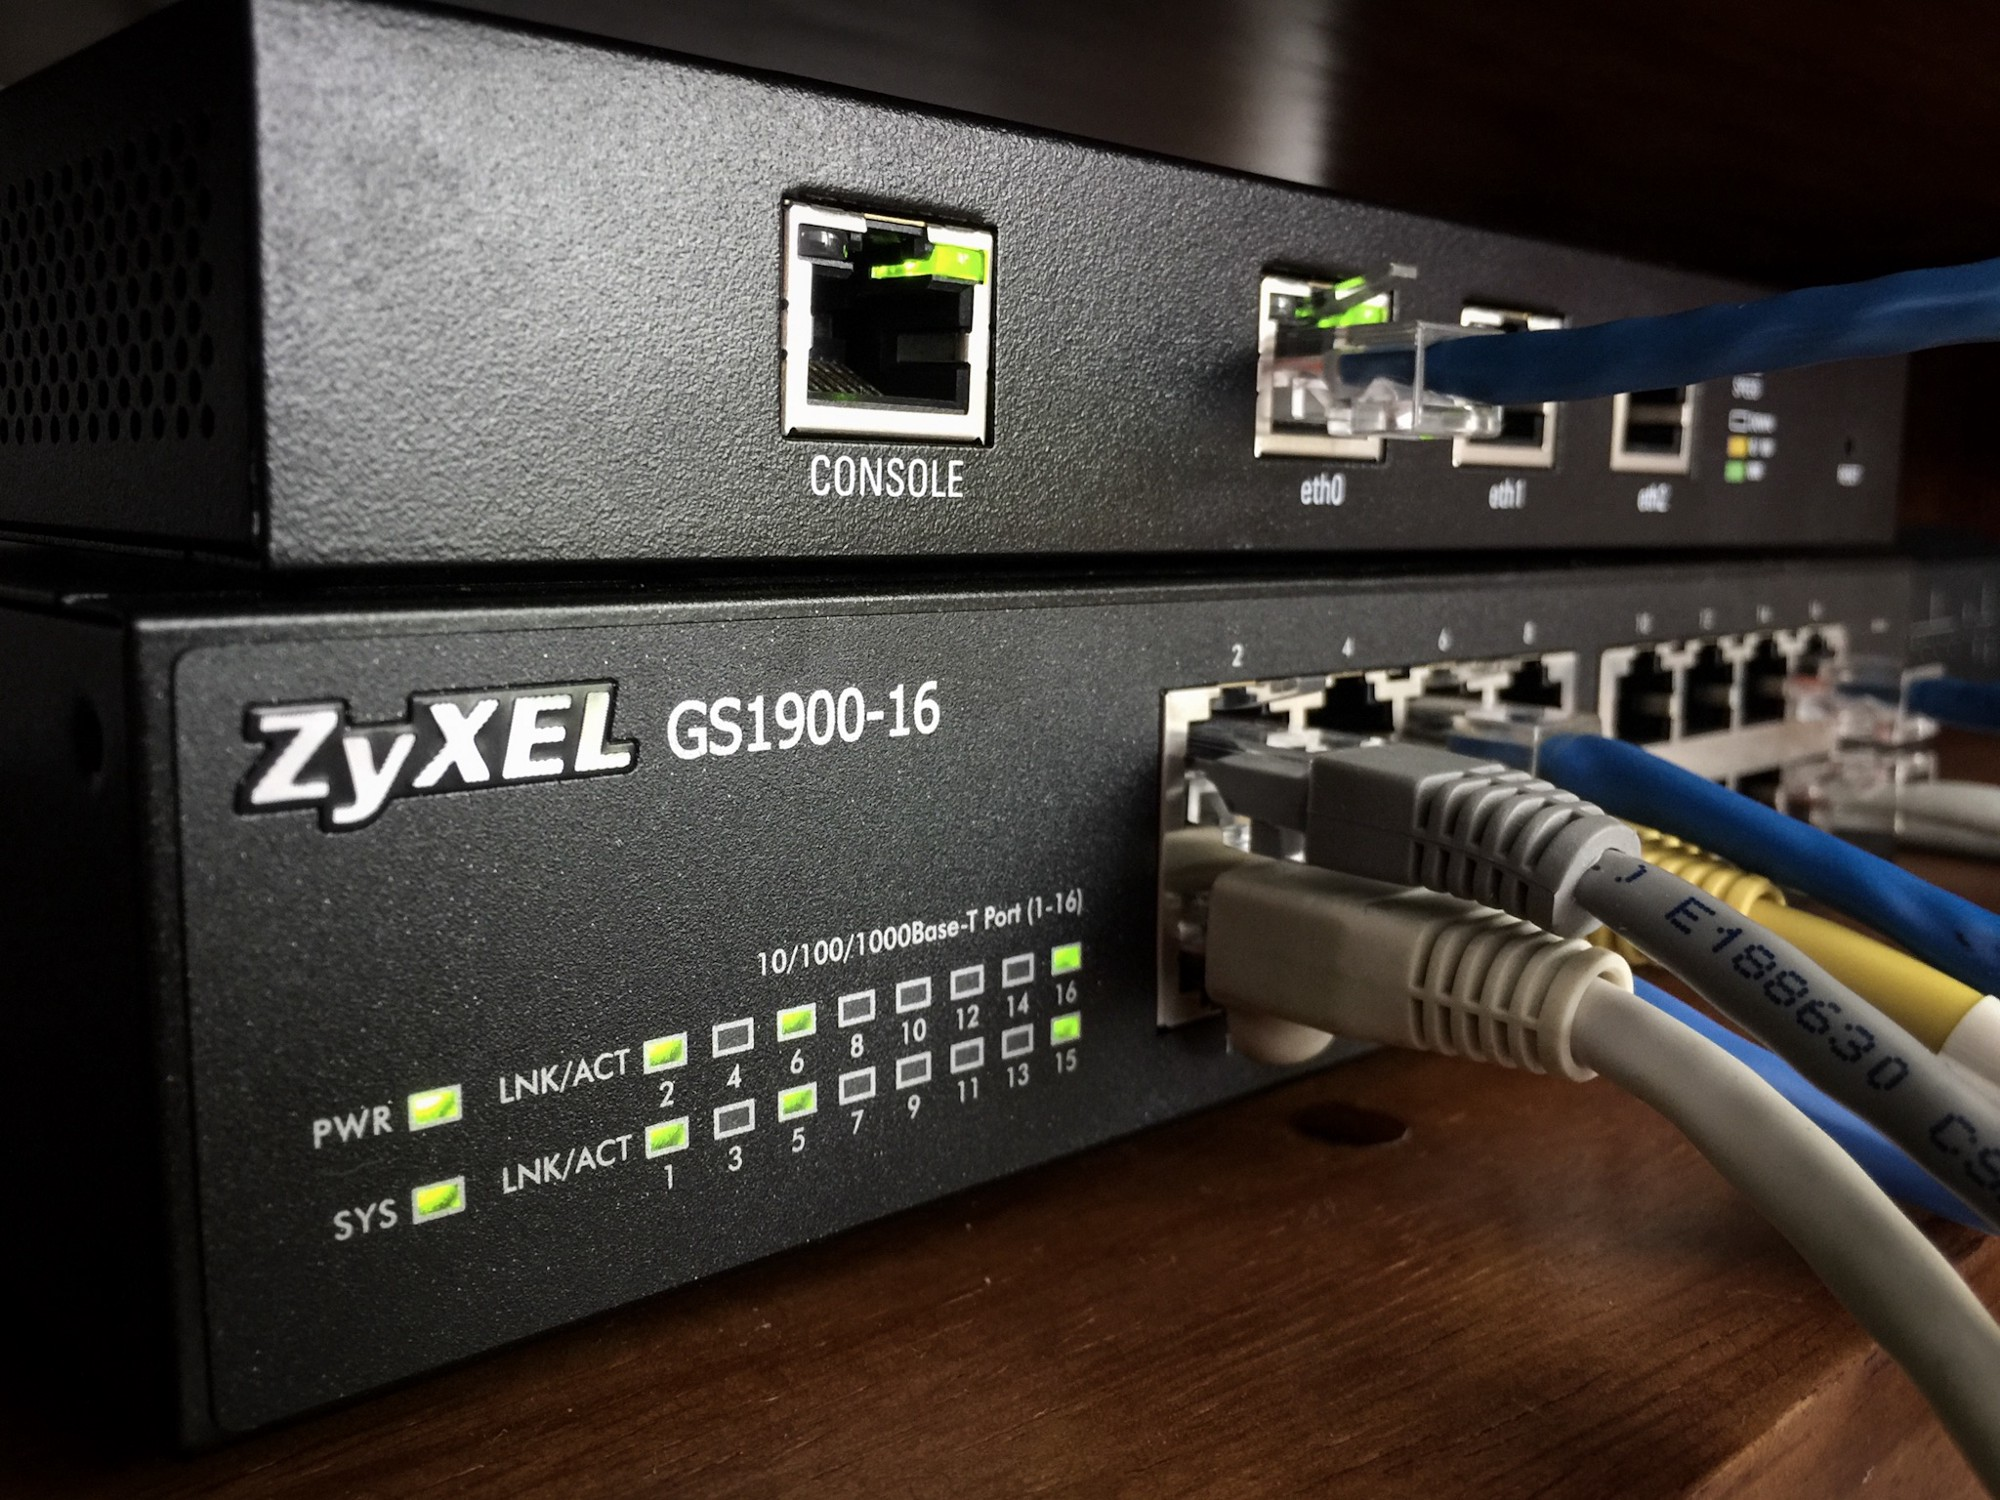 Home Network With Multiple Vlans Code Beta Blog Cable Modem Wireless Router Connection On Tv Wiring I Grabbed The Zyxel Gs190016 Since It Was Quite Inexpensive And Saw A Couple Of Good Reviews For Im Using Ubiquit Edgerouter Lite That